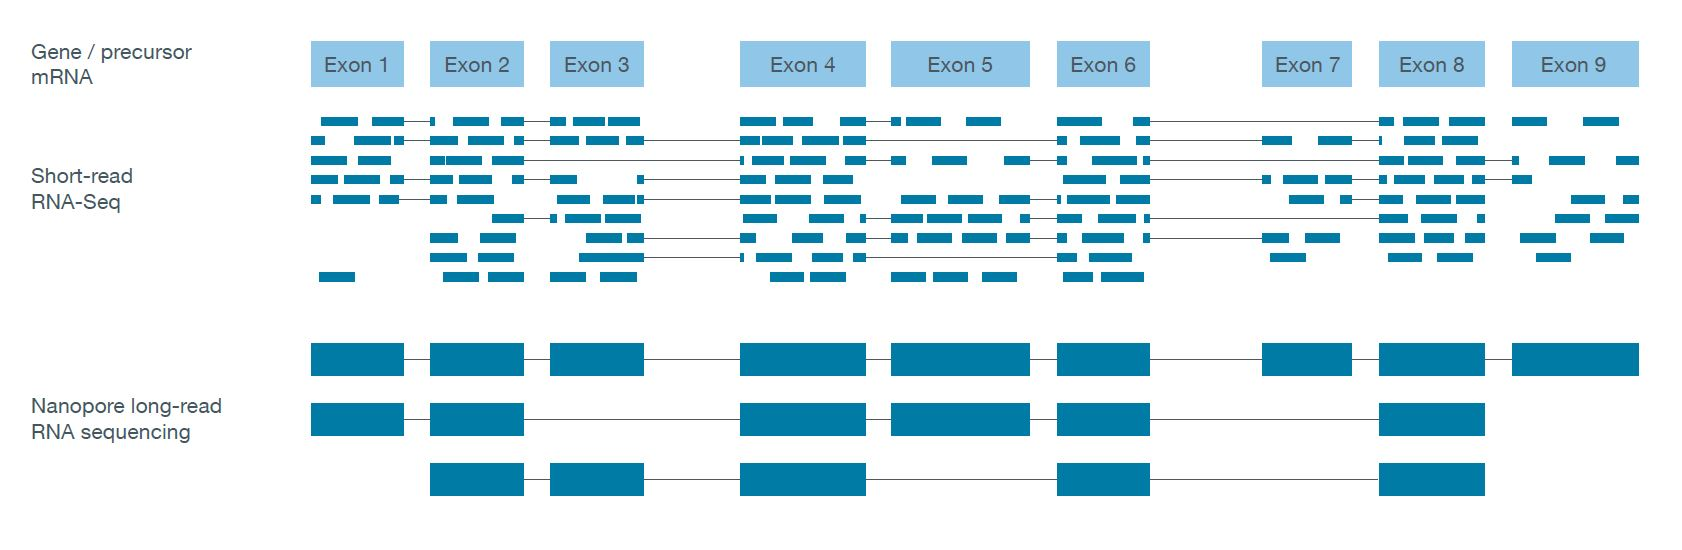 Schematic comparing full-length nanopore reads with short read RNA-seq